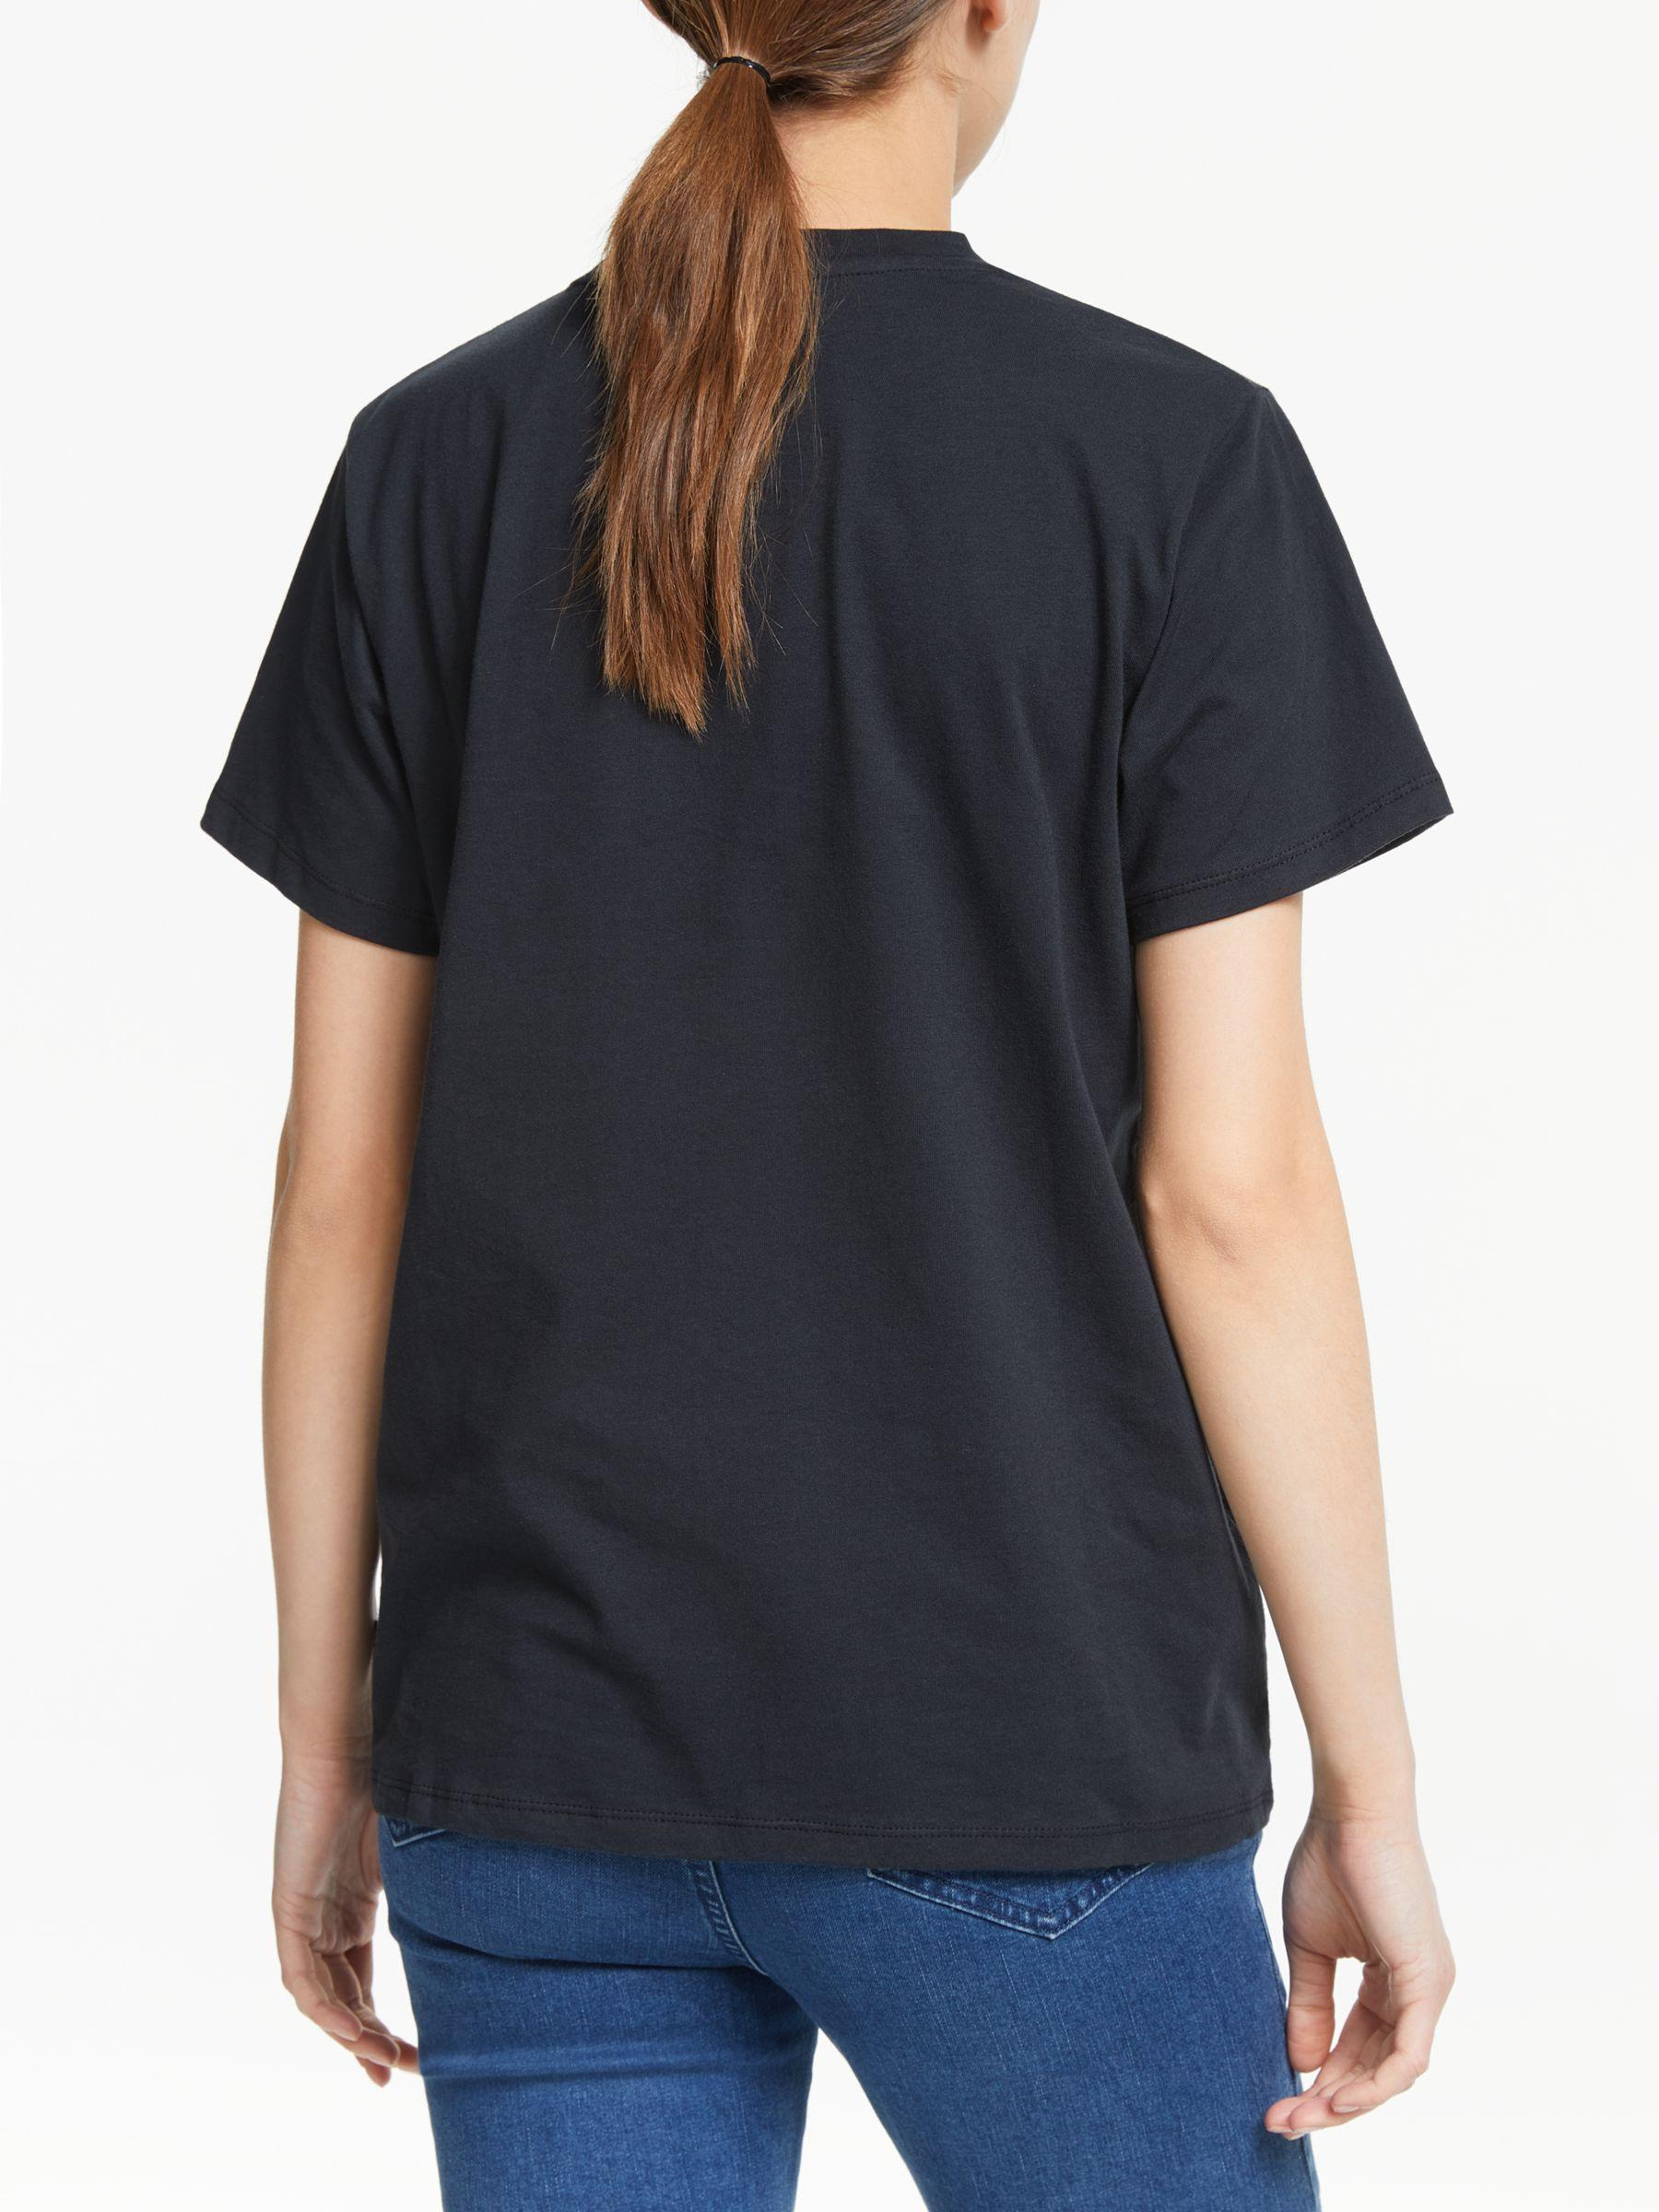 T In Lincoln Shirt Penfield Black Lyst NP0wkXn8O